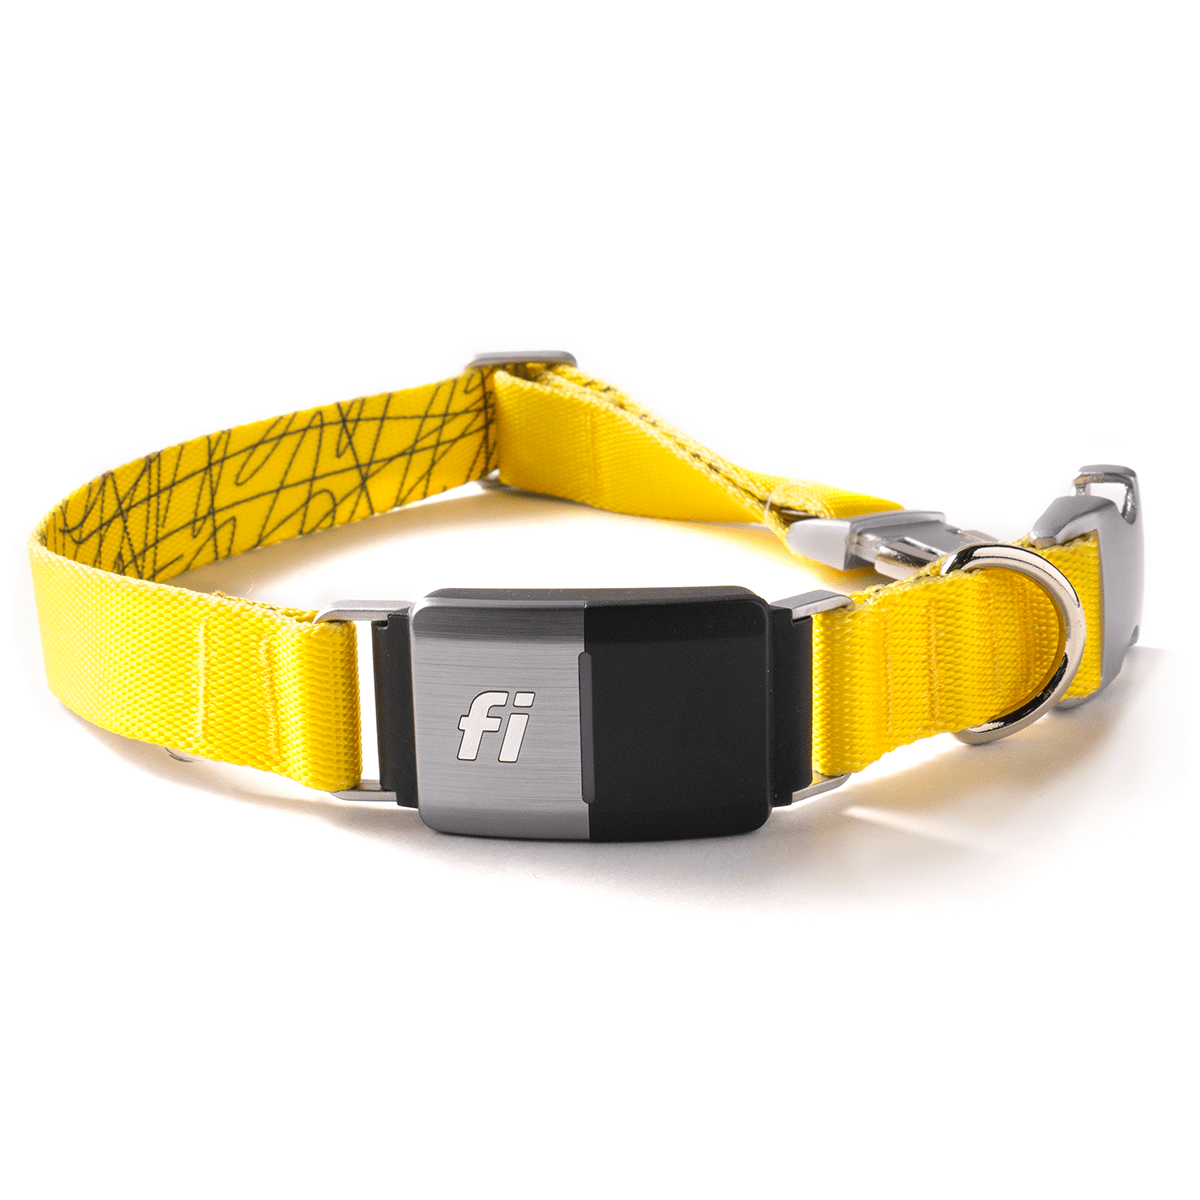 Fi Smart Dog Collar with Tracking Your Dog's Activity Black Friday